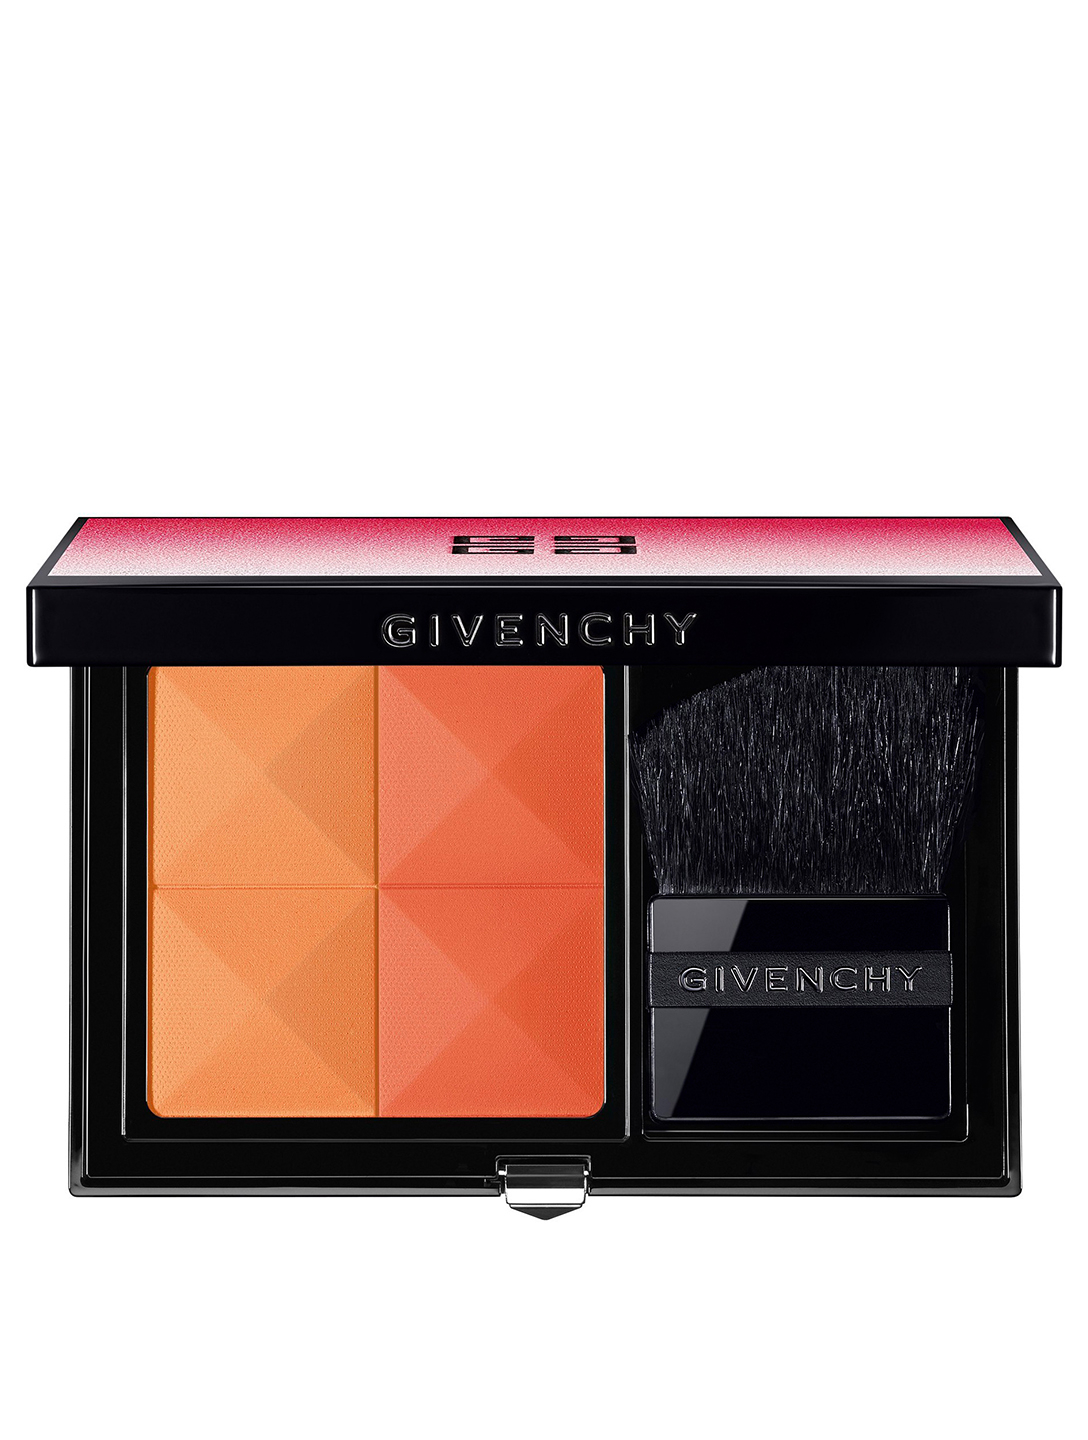 GIVENCHY Prisme Blush Powder Duo - Spring 2019 Limited Edition Beauty Orange